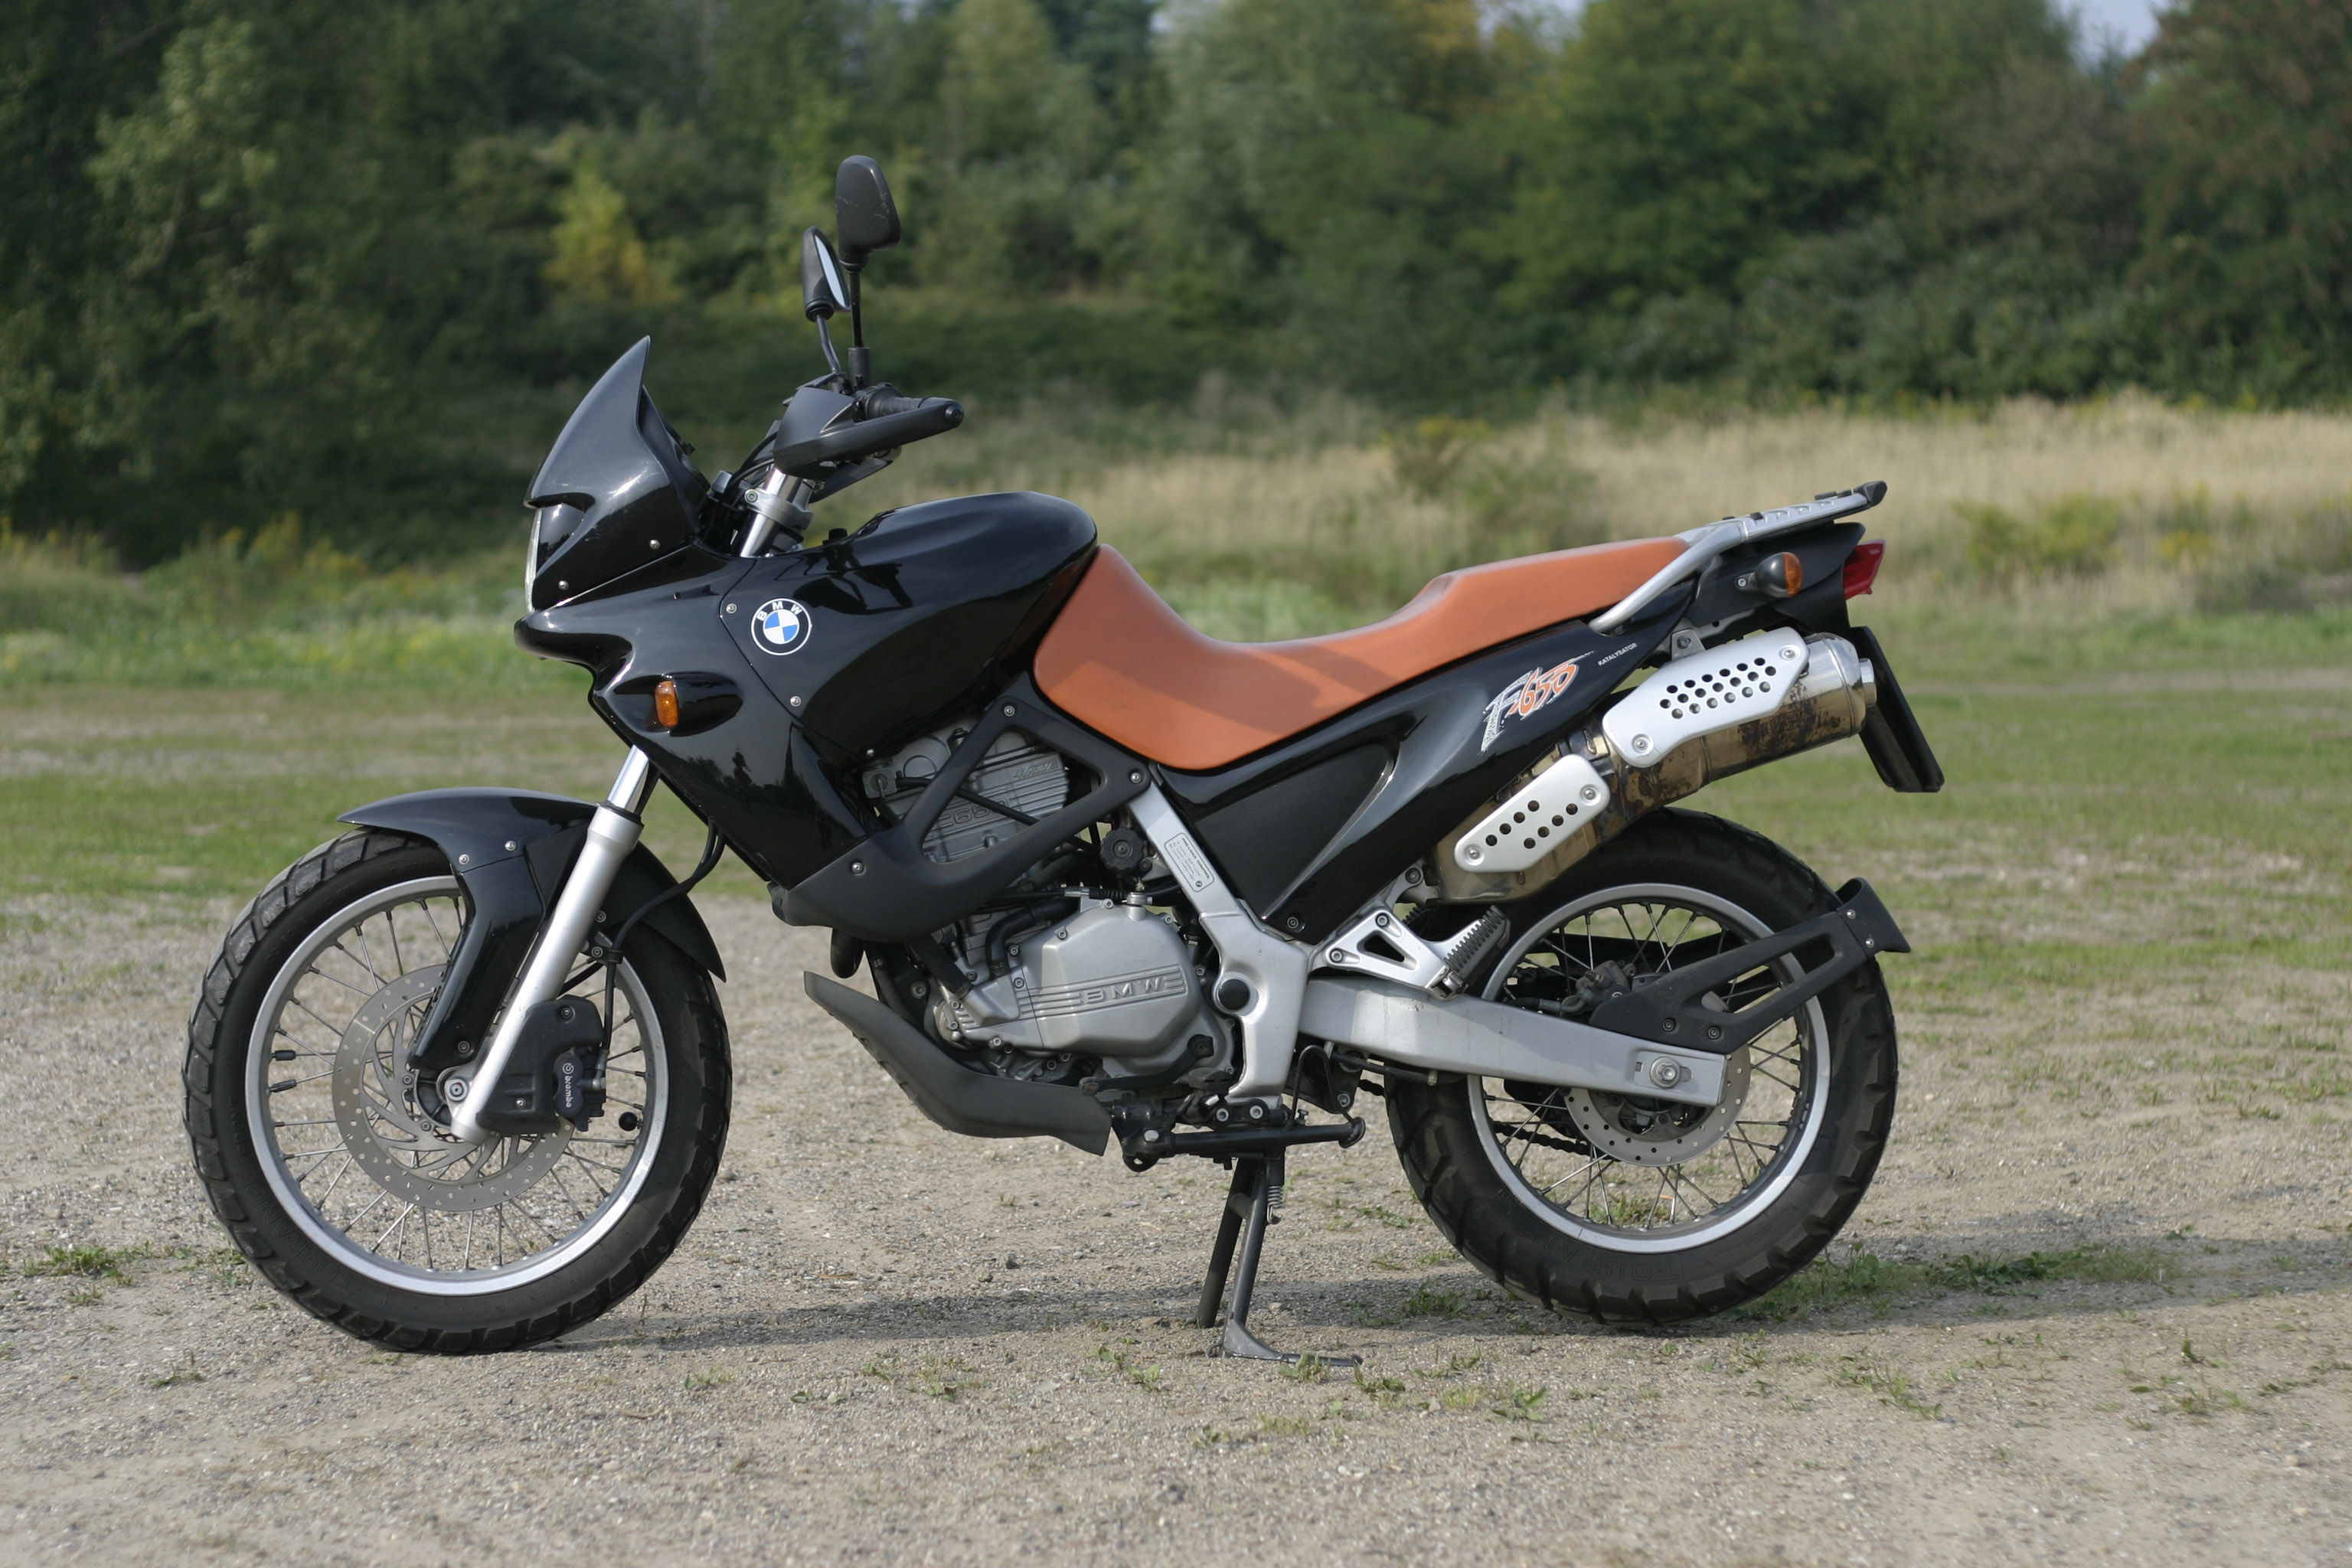 Motorcycle_BMW_f650_st_01